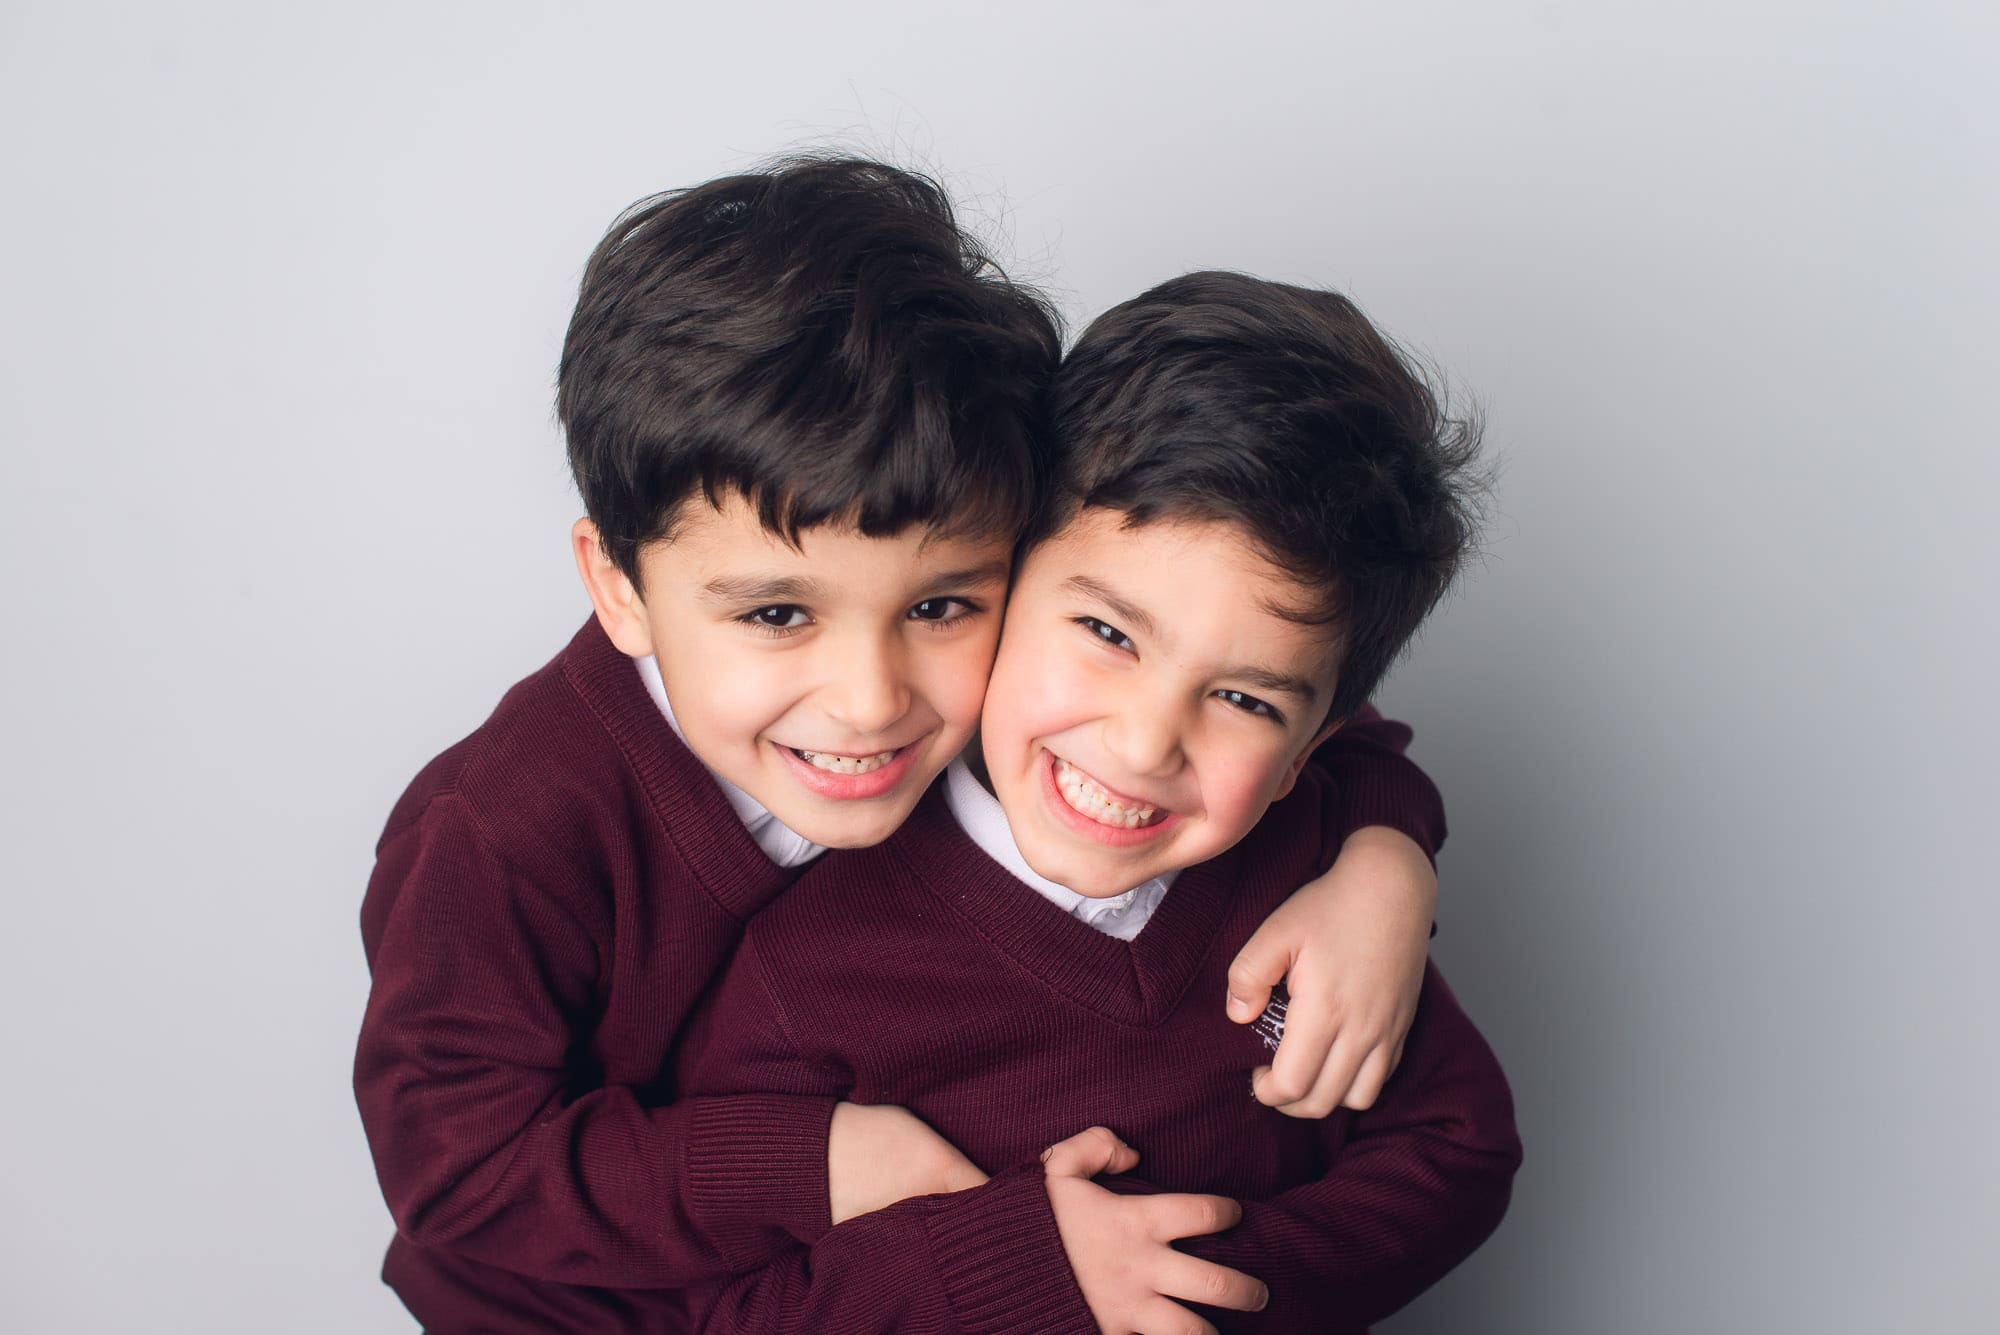 brothers hugging in Vancouver school photo